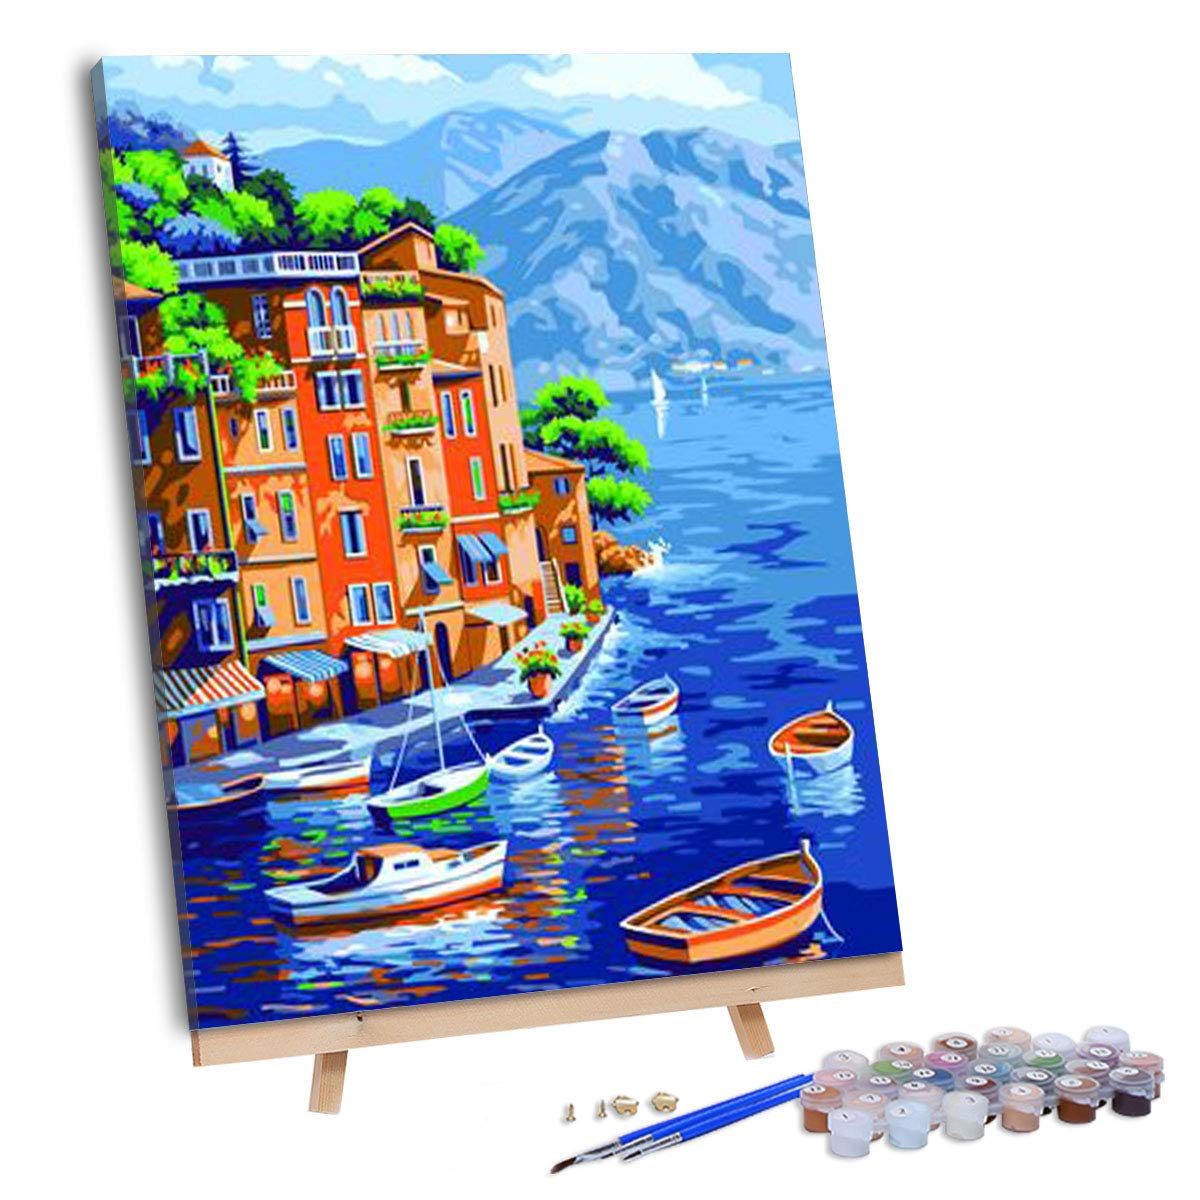 VIGEIYA DIY Paint by Numbers for Adults Include Framed Canvas and Wooden Easel with Brushes and Acrylic Pigment 15.7x19.6inch